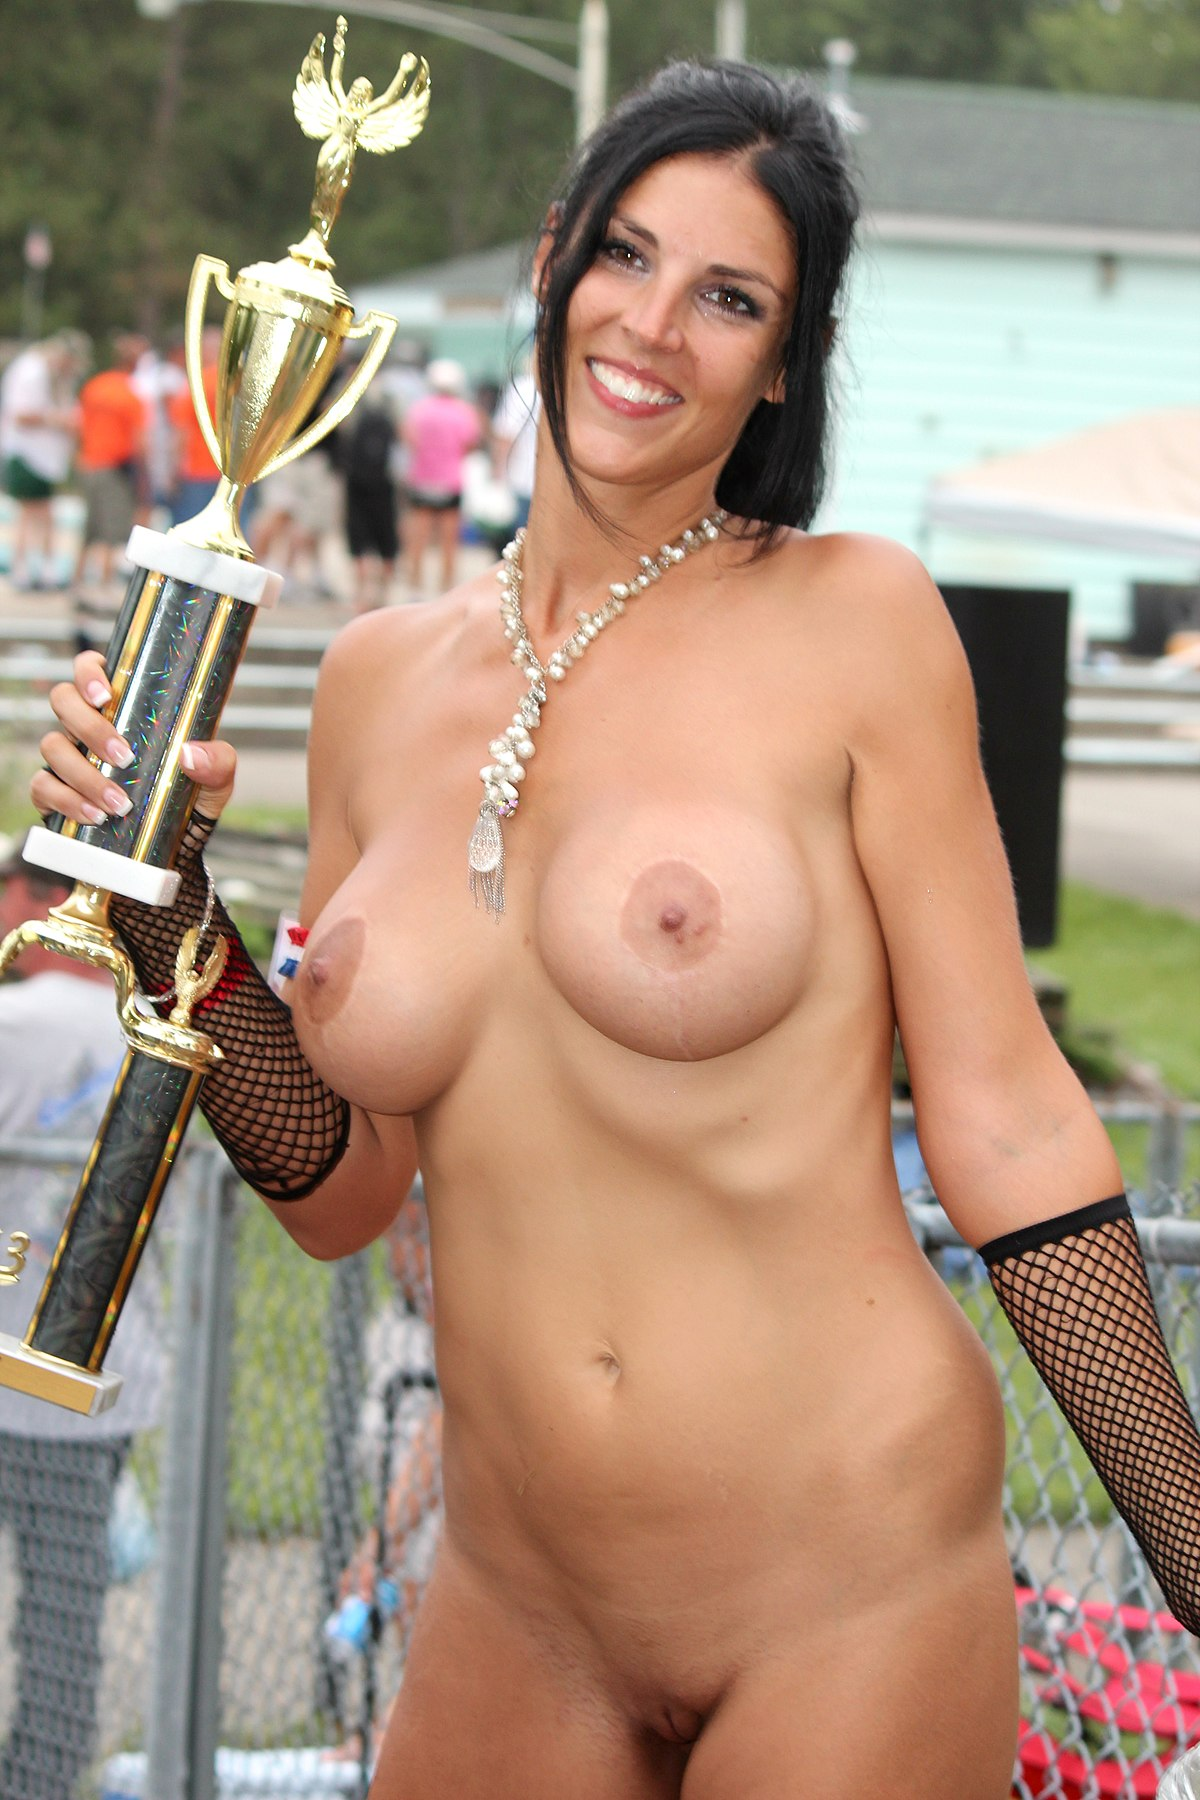 Free nudist beauty pageant video think, that